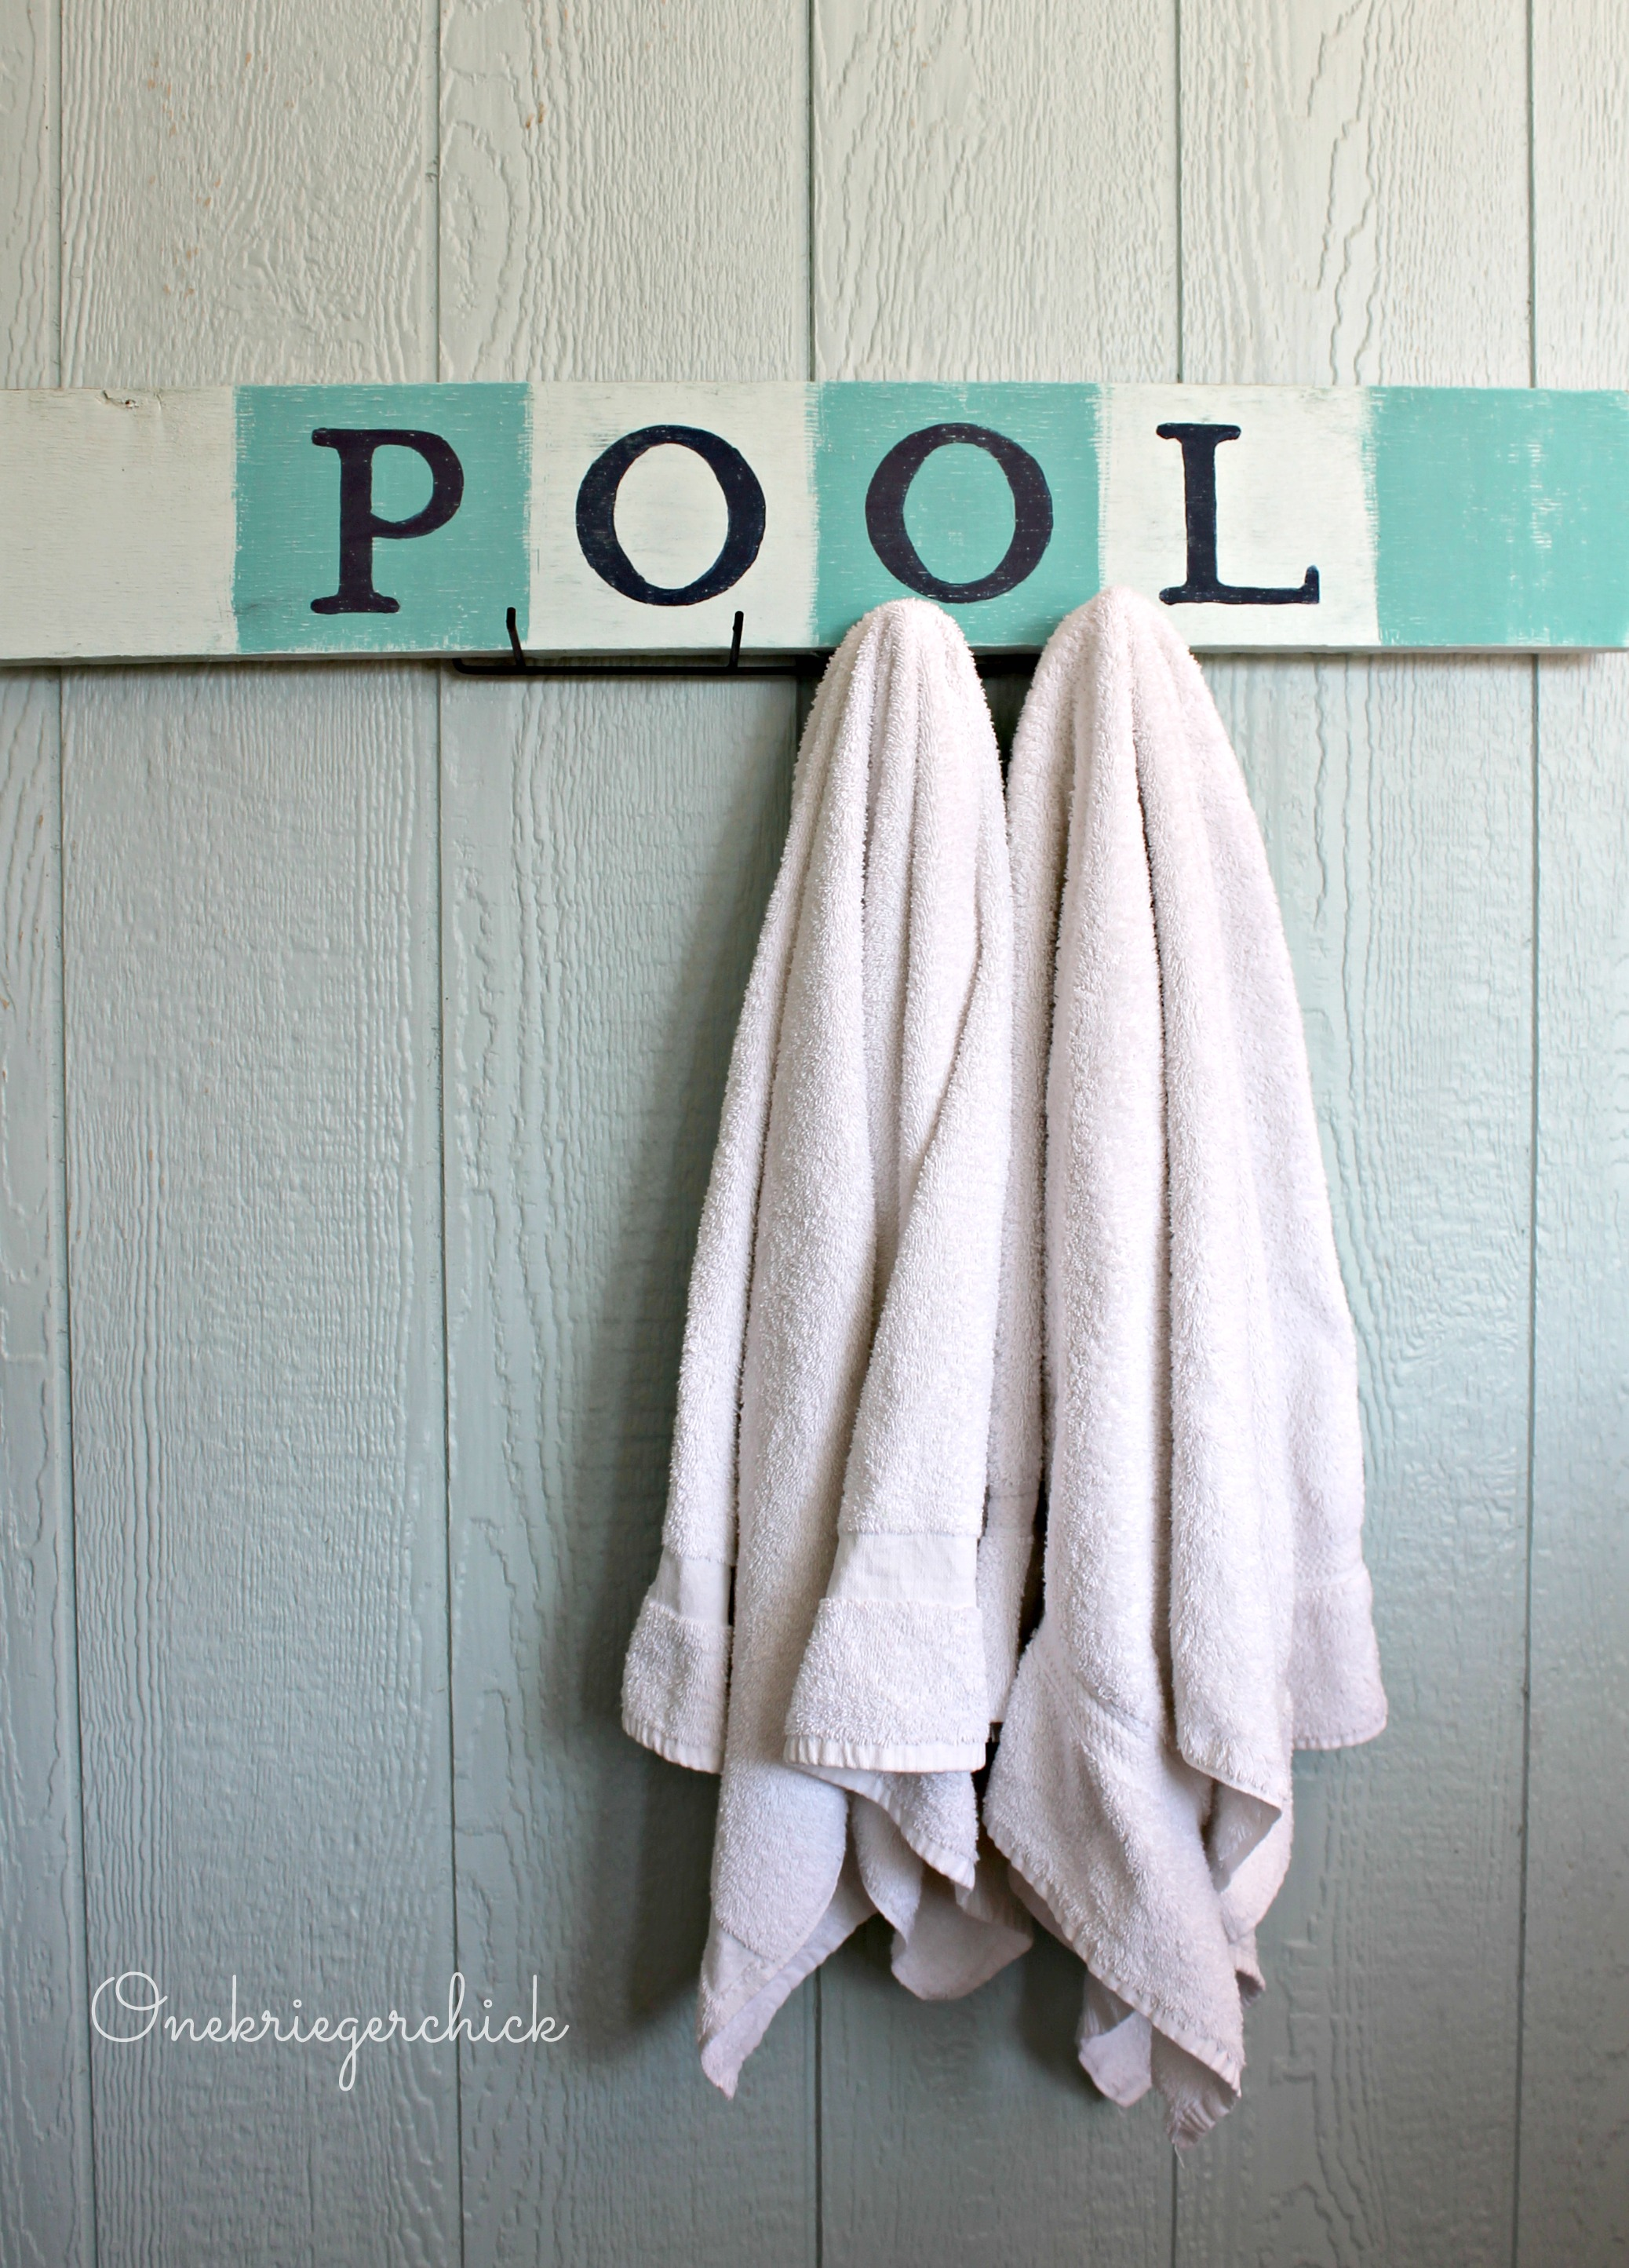 Pottery Barn Inspired Diy Pool Sign Onekriegerchick